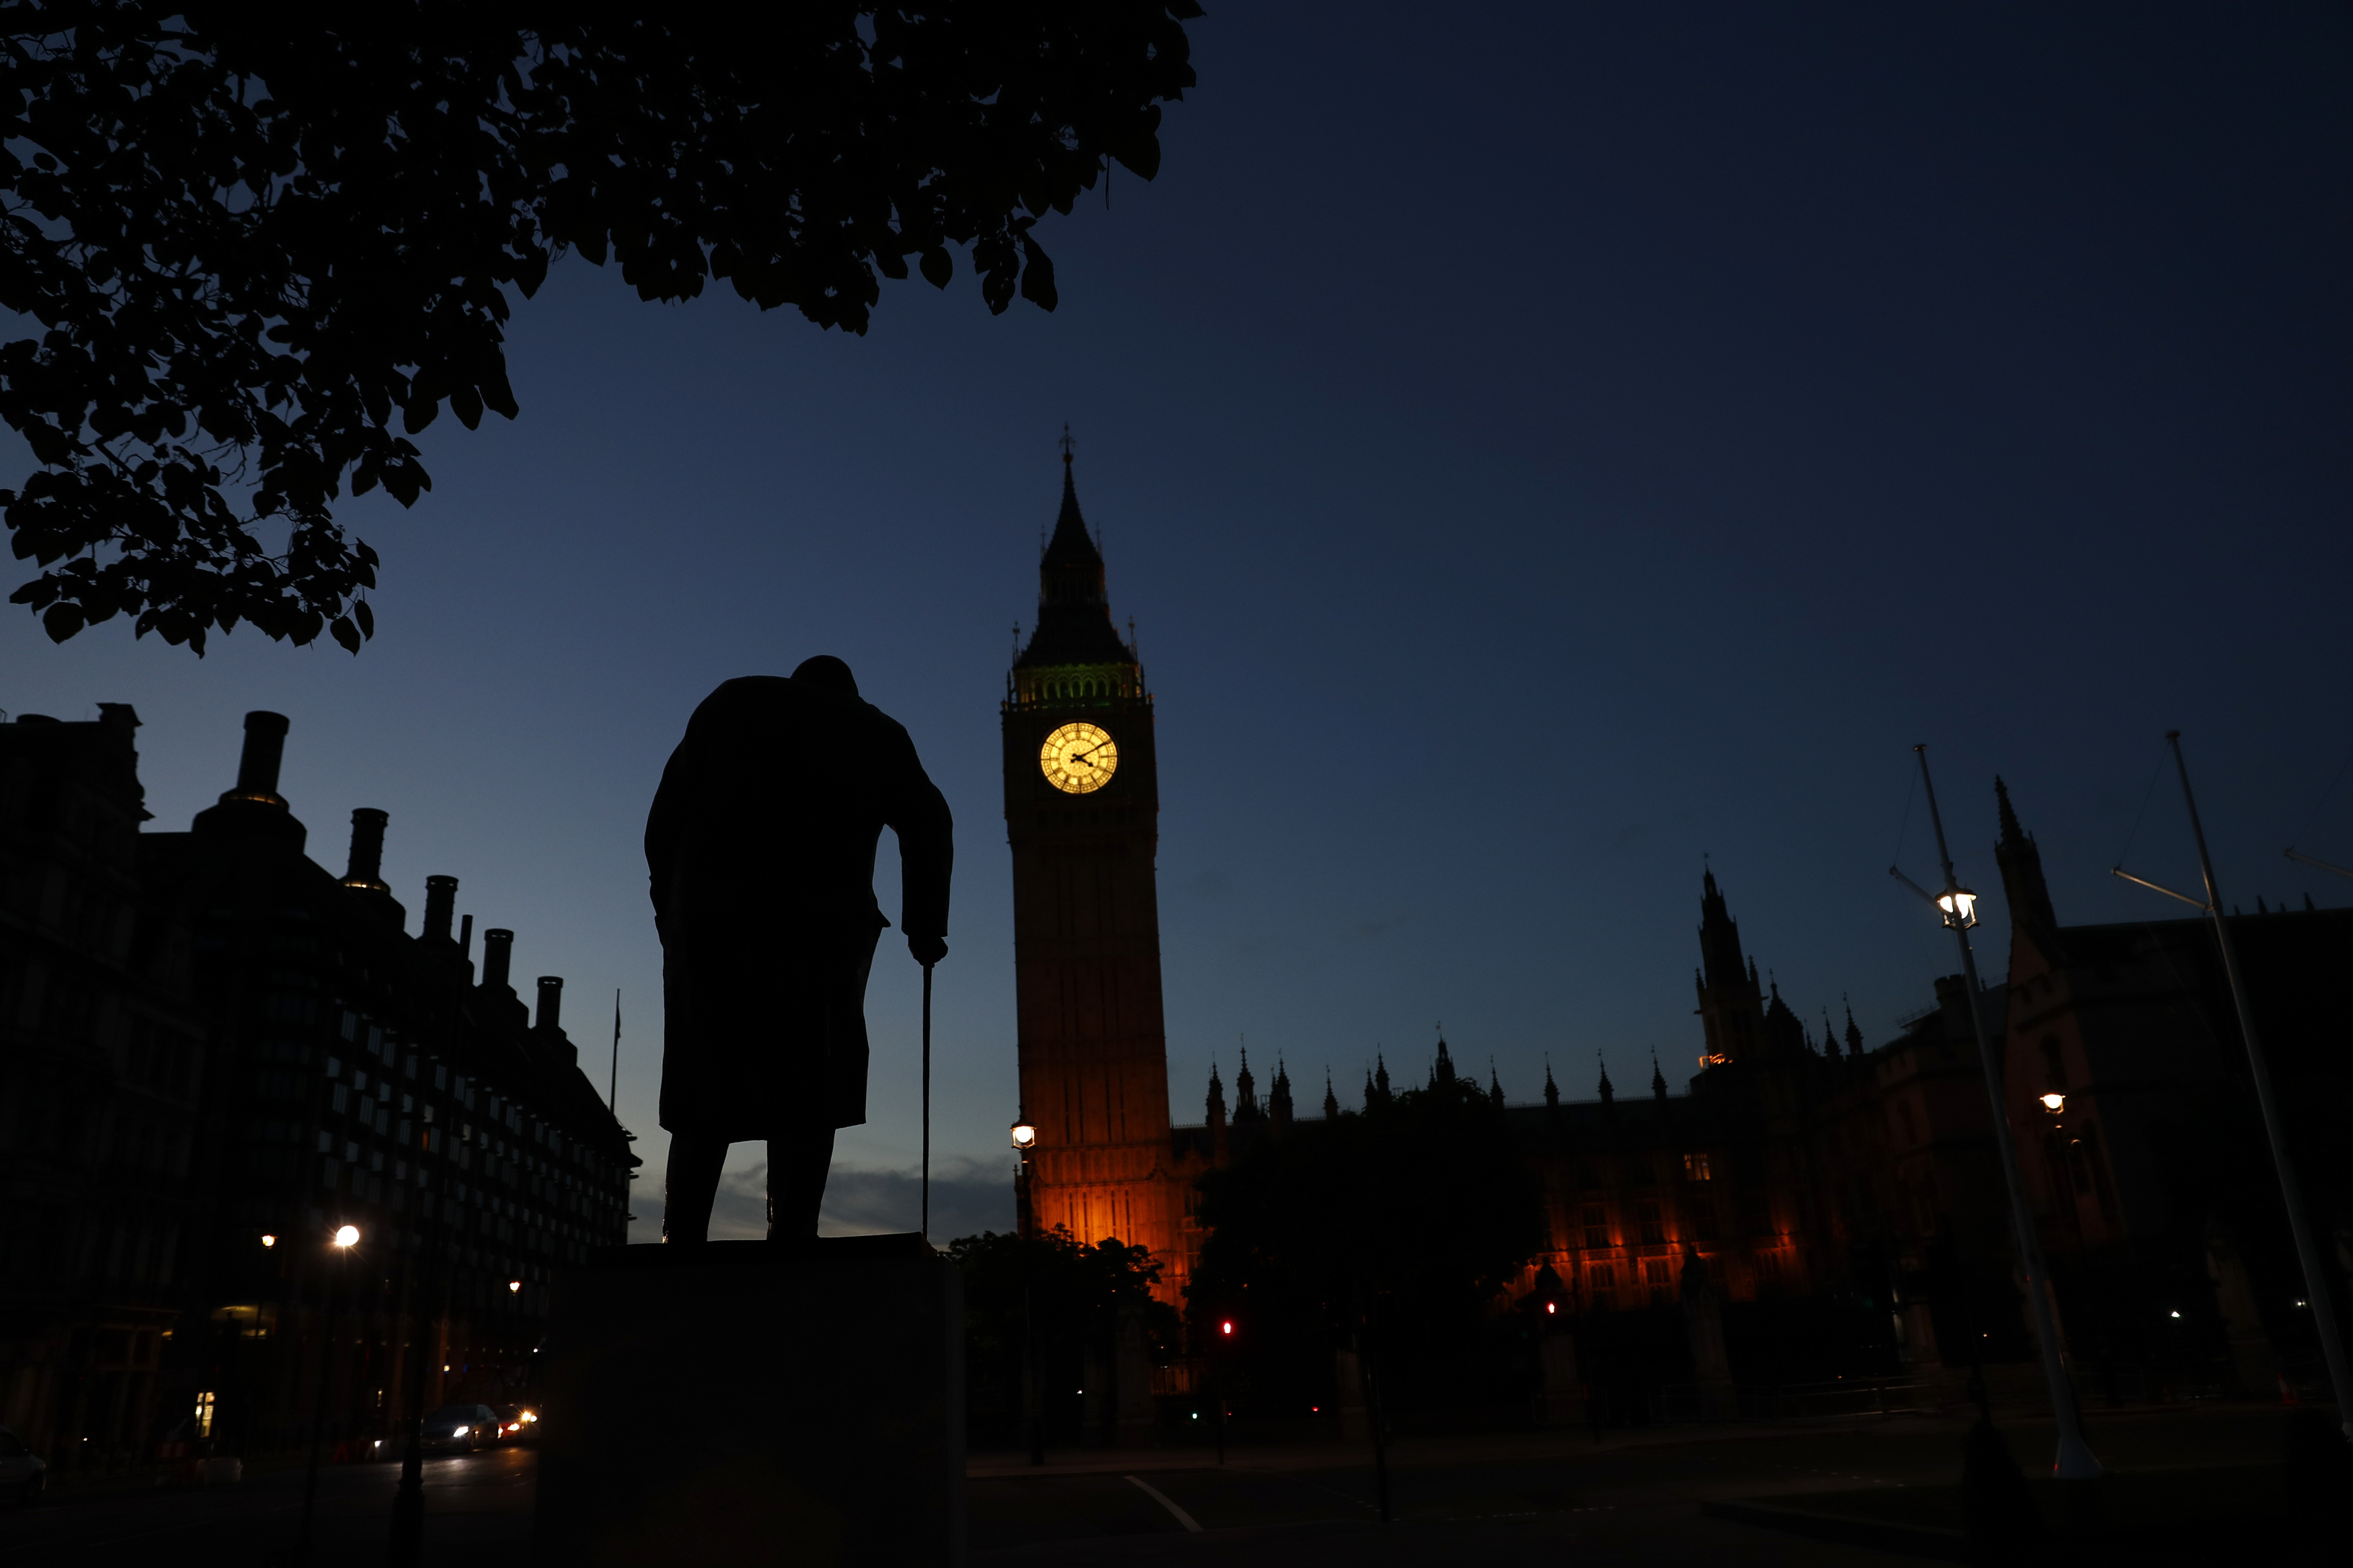 Dawn breaks behind the Houses of Parliament and the statue of Winston Churchill in Westminster, London, Britain